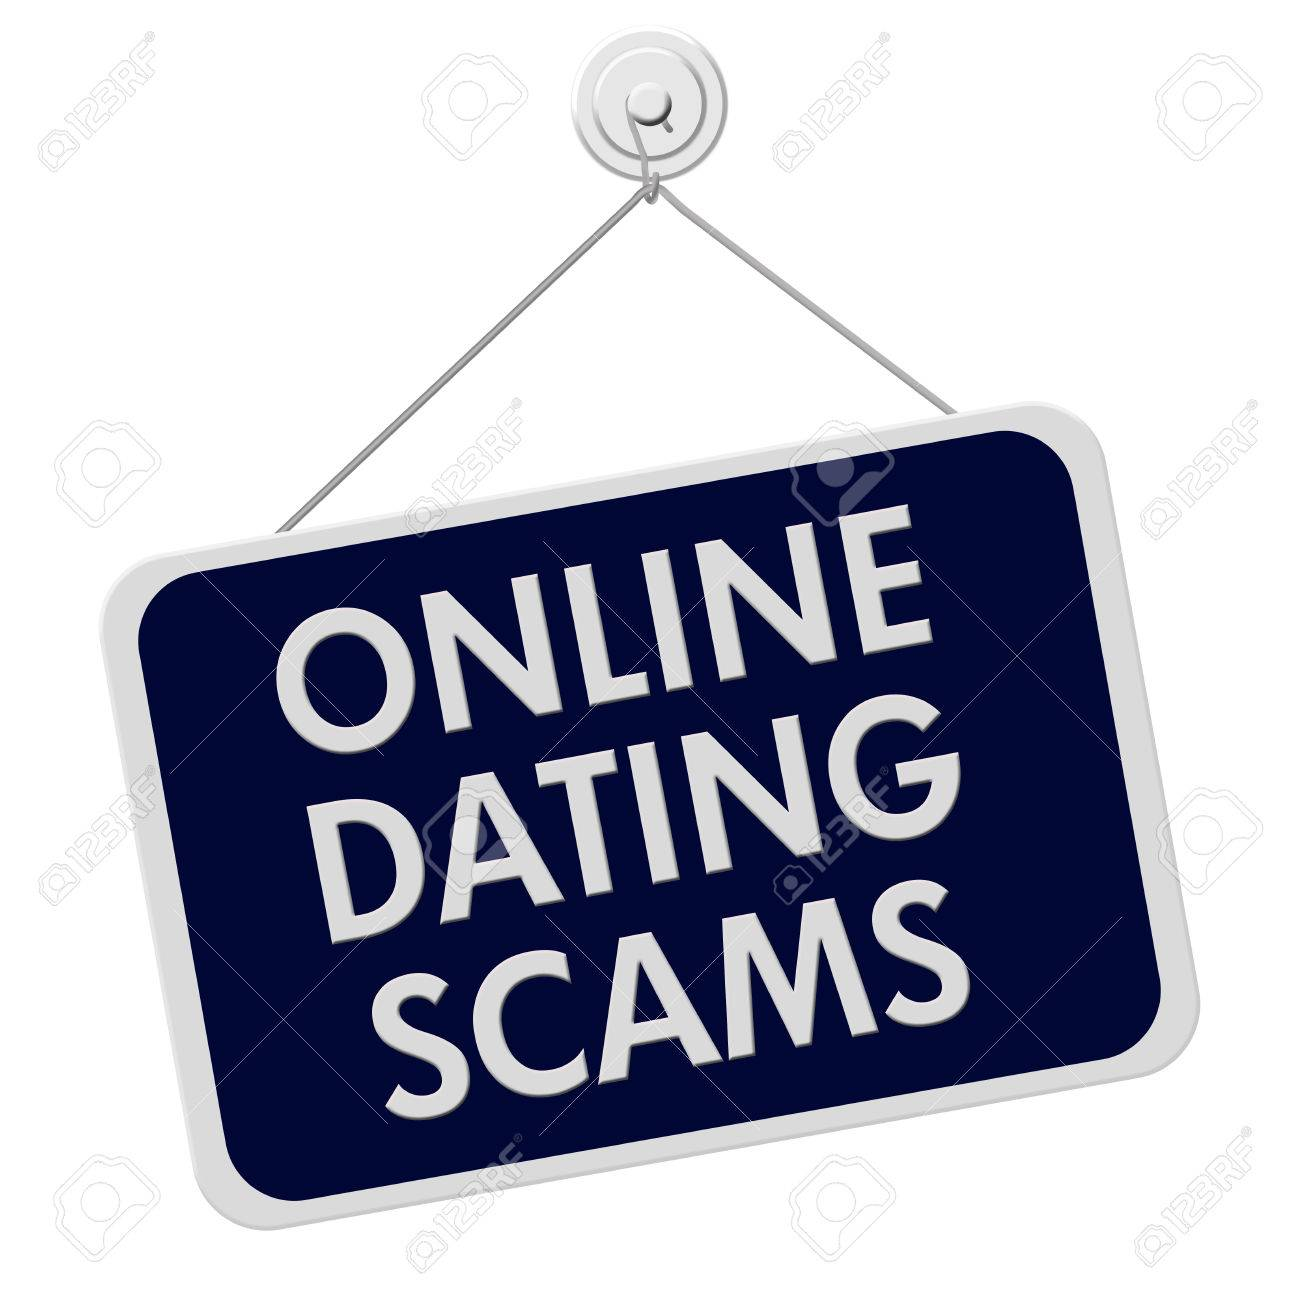 online dating texting scams